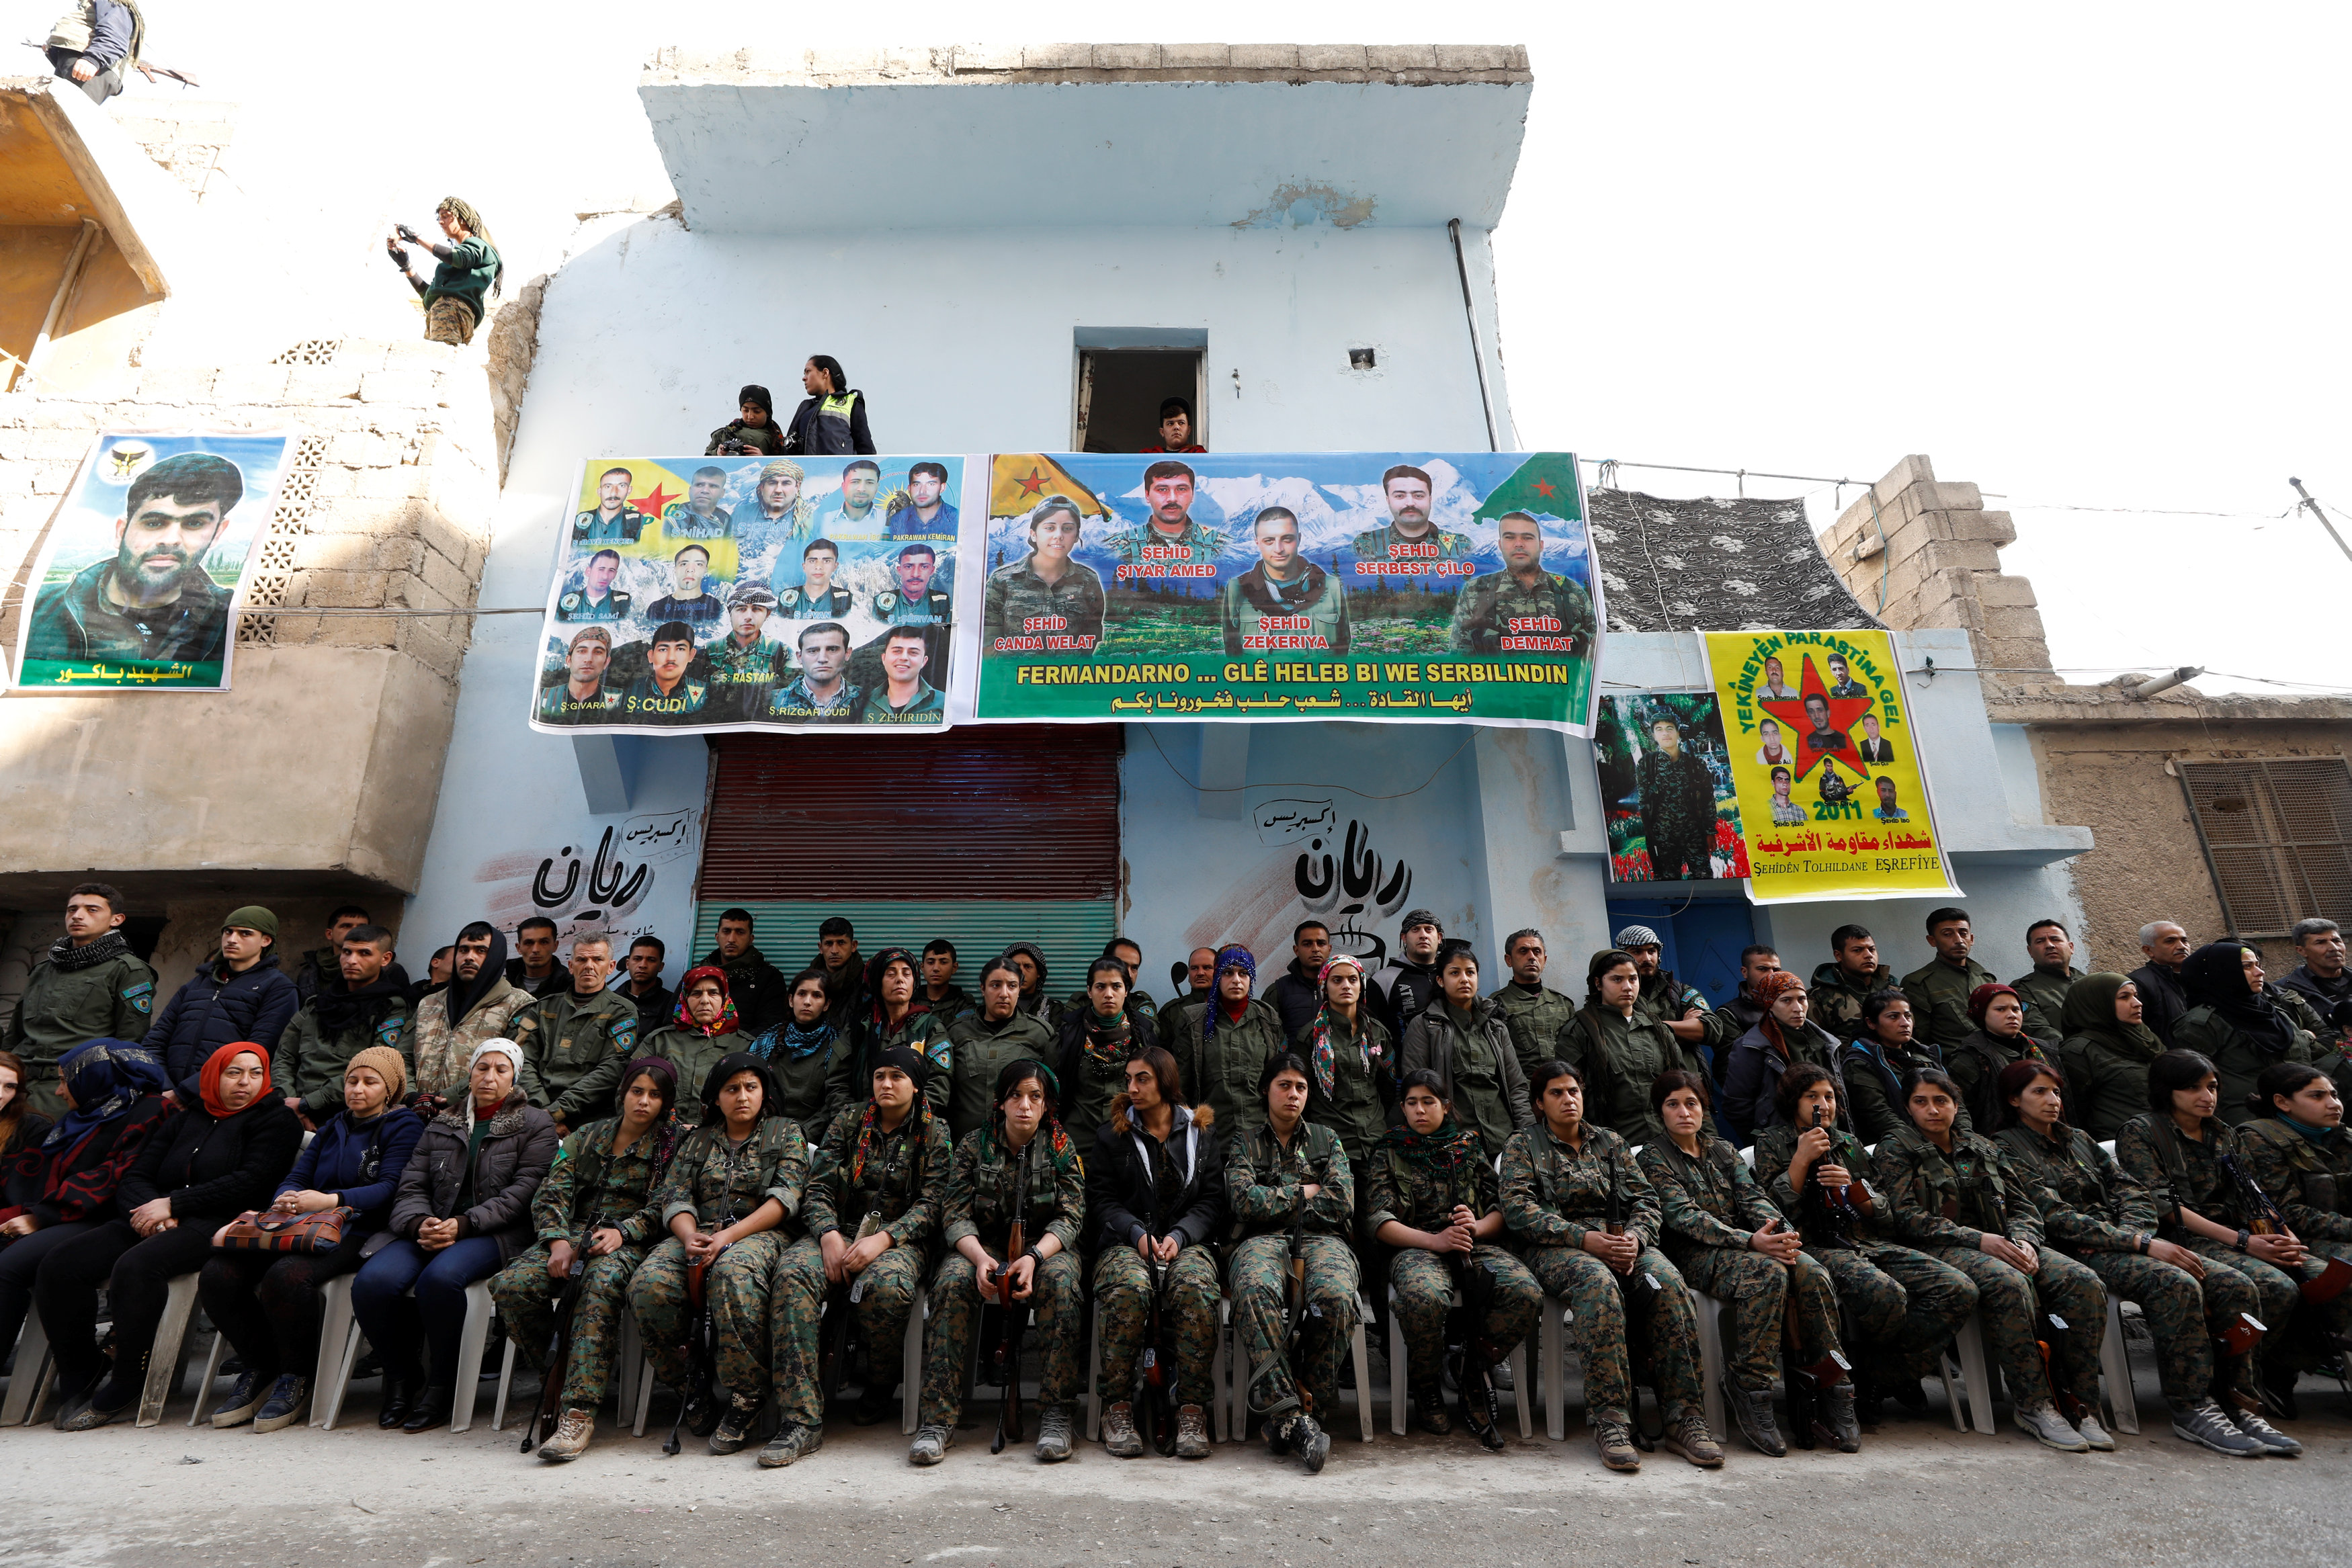 Kurdish female fighters of the Women's Protection Unit (YPJ) hold their weapons as they sit in the Sheikh Maksoud neighbourhood of Aleppo, Syria February 7, 2018. Picture taken February 7, 2018.